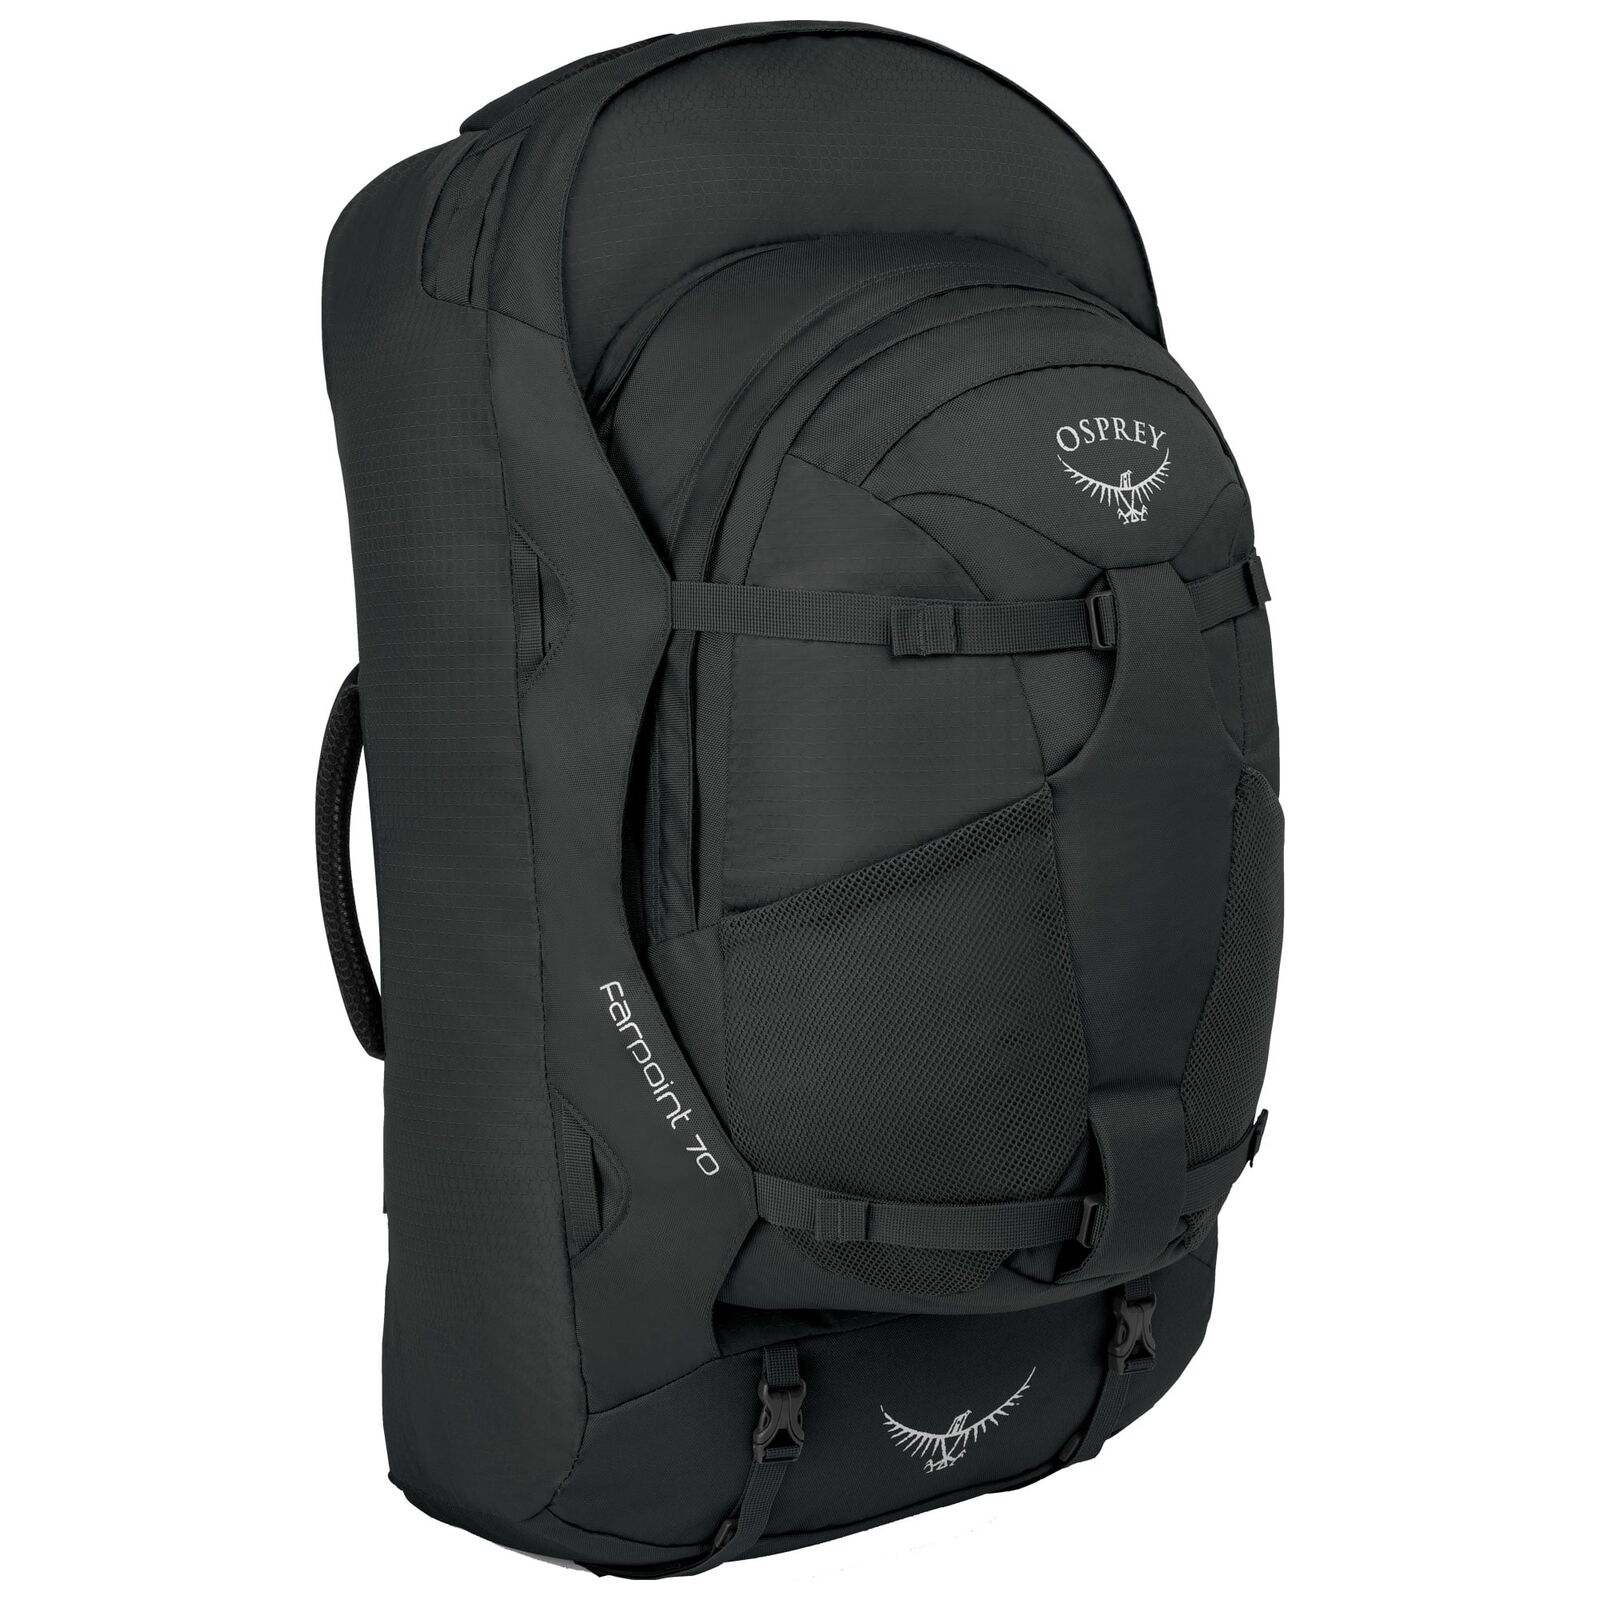 Osprey Farpoint 70 Bag Travel Bag 70 - Volcanic Grau M/L c995c4